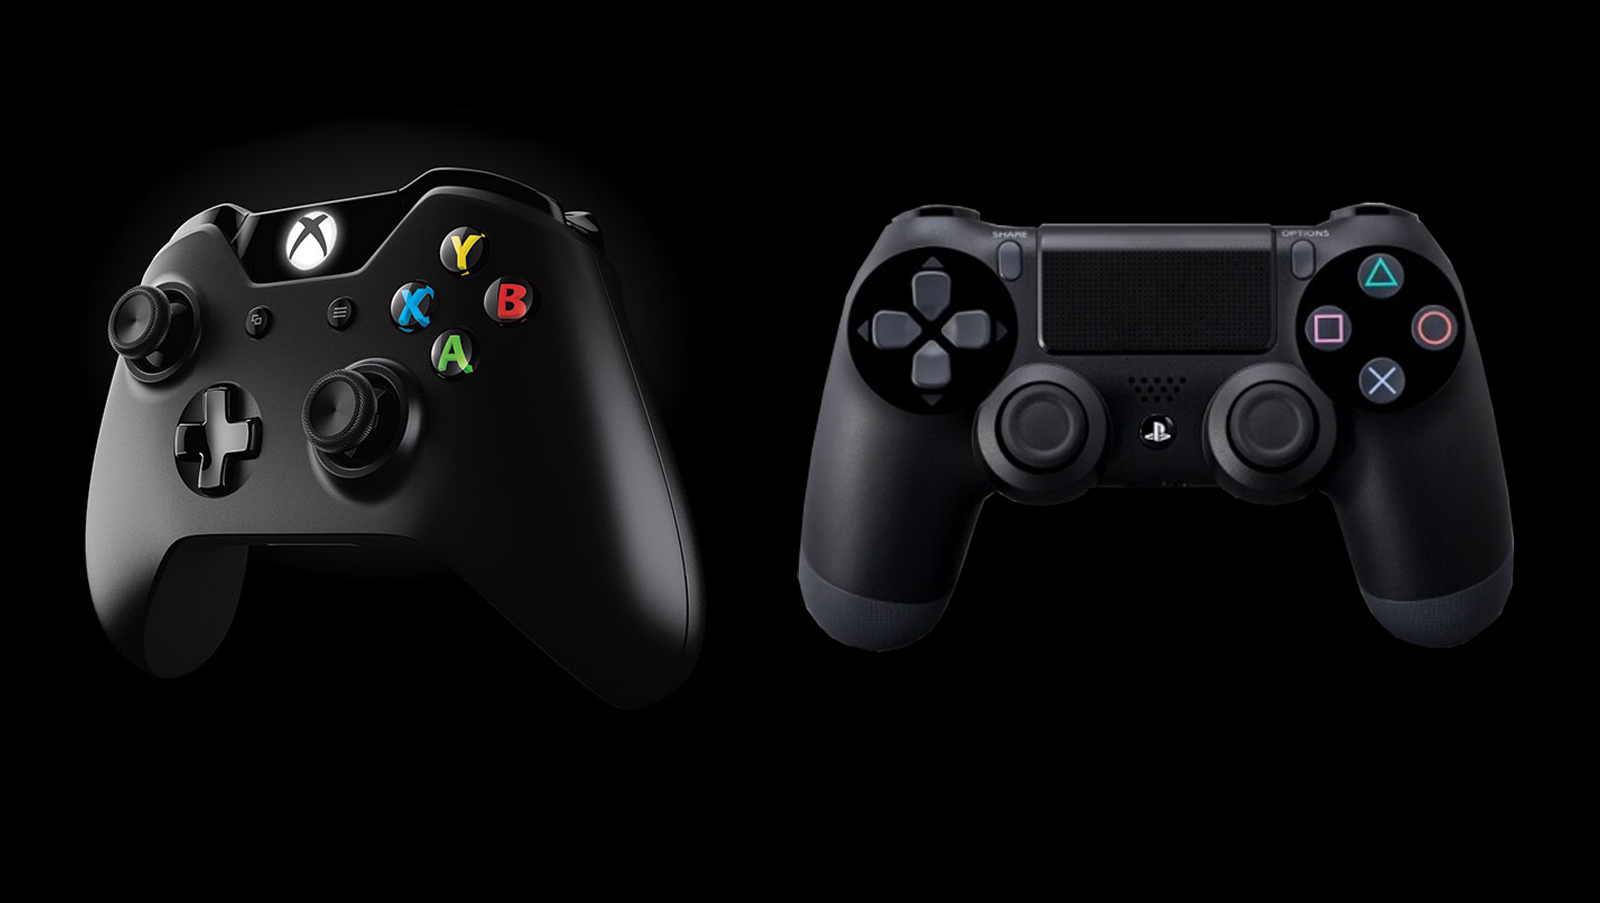 The Console Wars: Xbox One vs. PS4 (The Dust Has Settled)